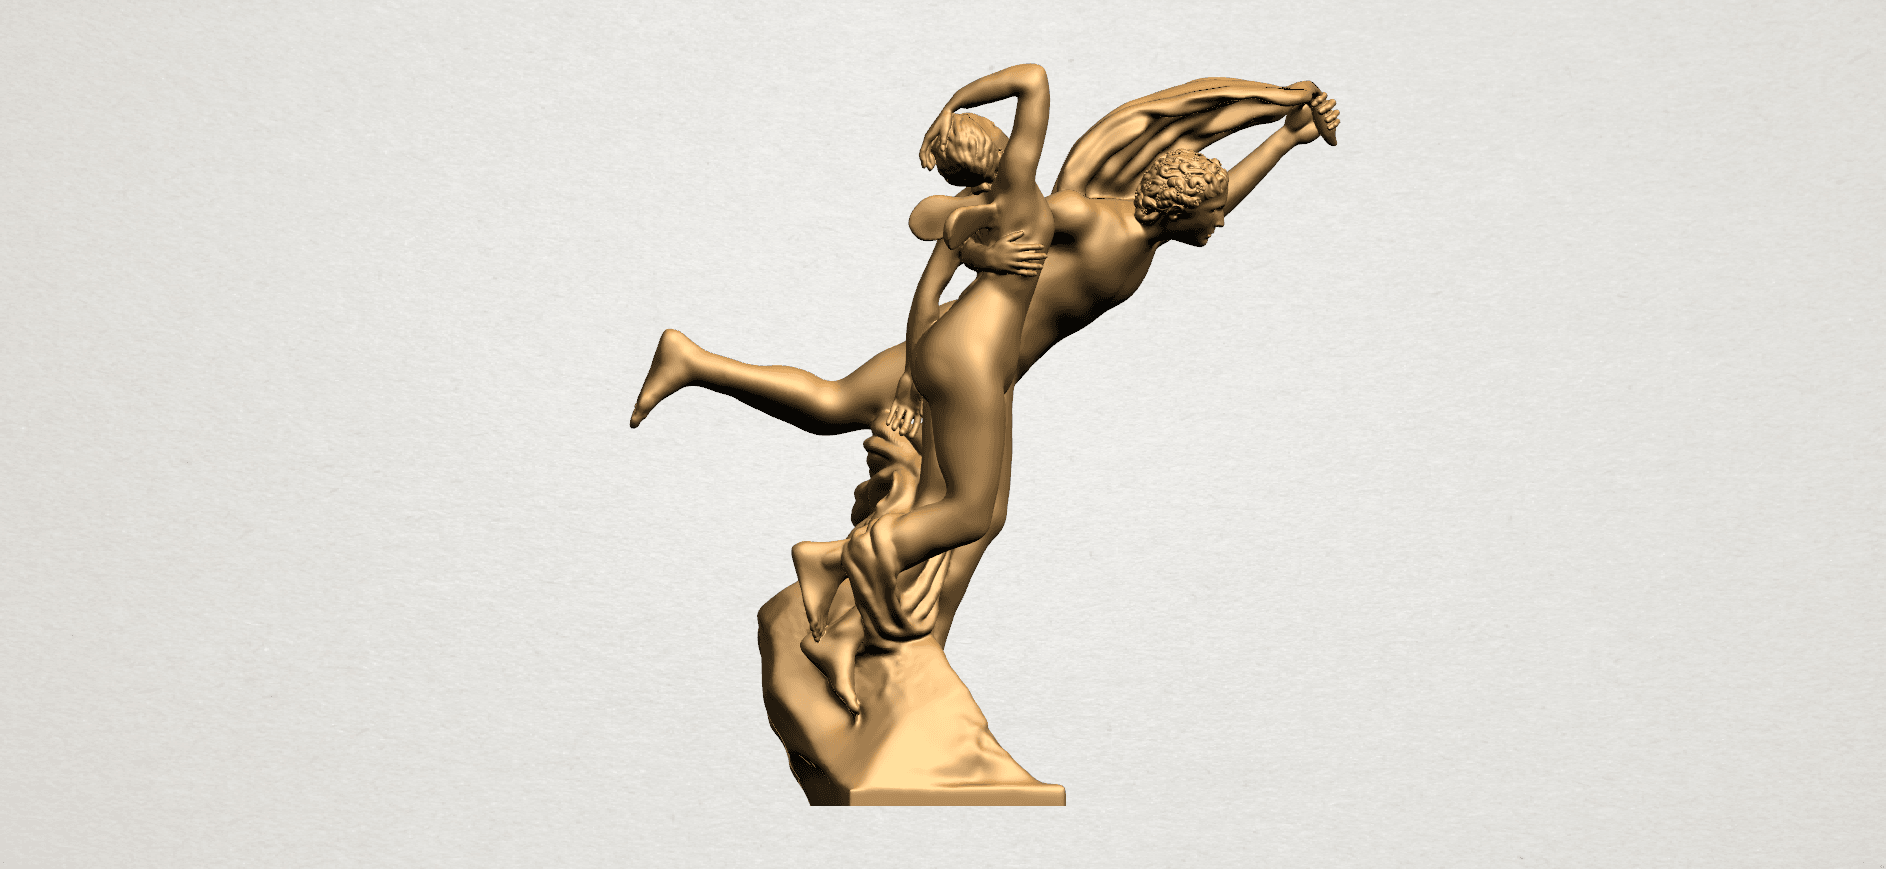 Cupid and Psyche - A07.png Download free STL file Cupid and Psyche • 3D printing template, GeorgesNikkei